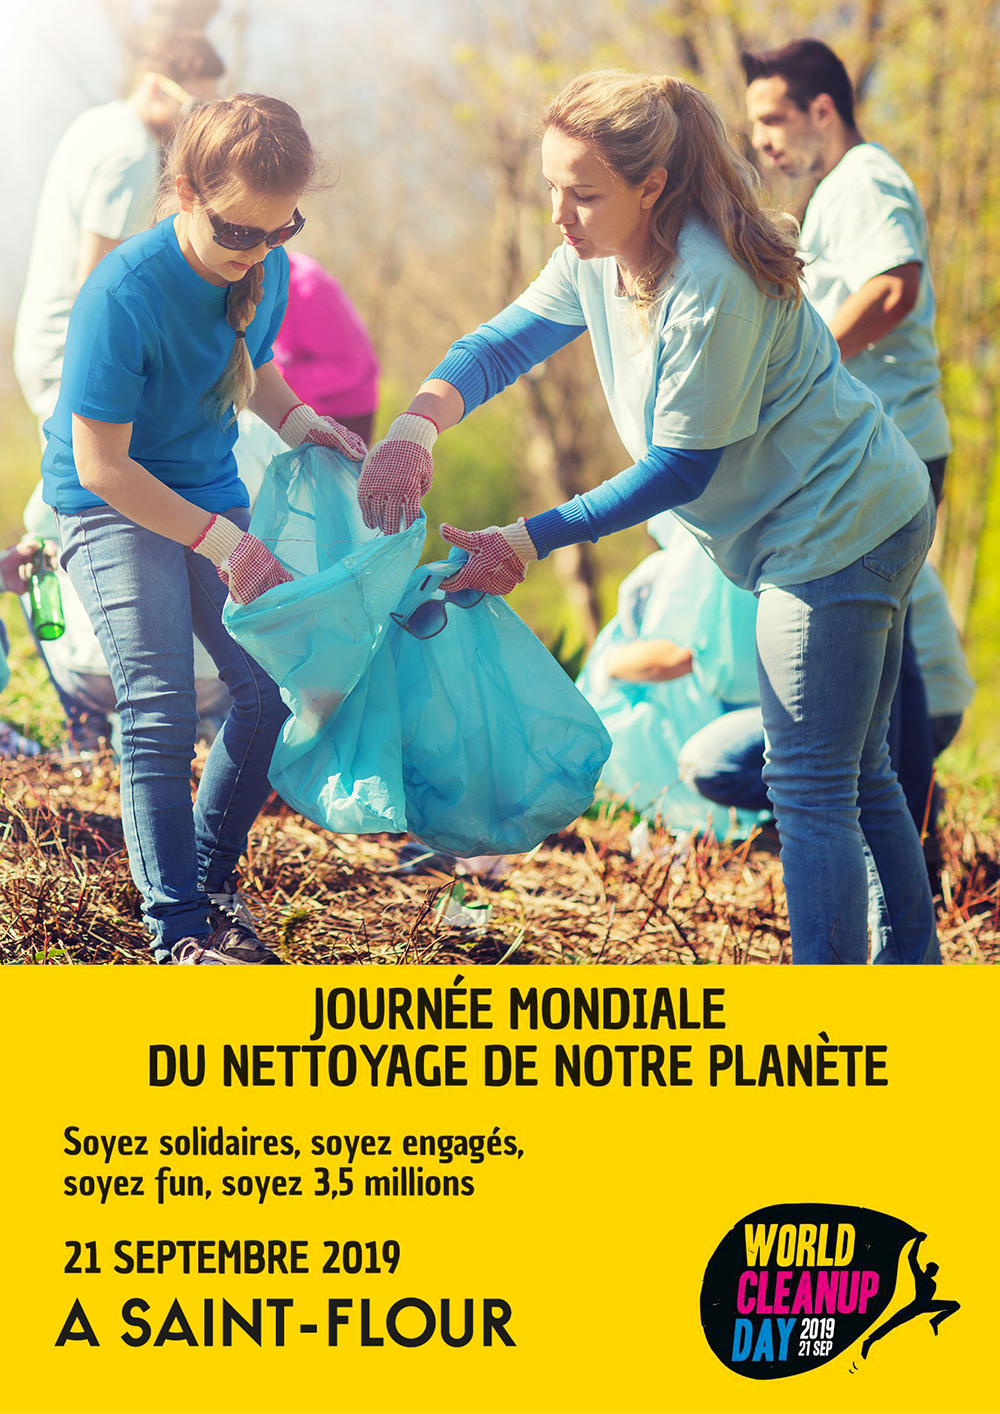 wORLD CLEAN UP DAY ST FLOUR - 21 septembre 2019